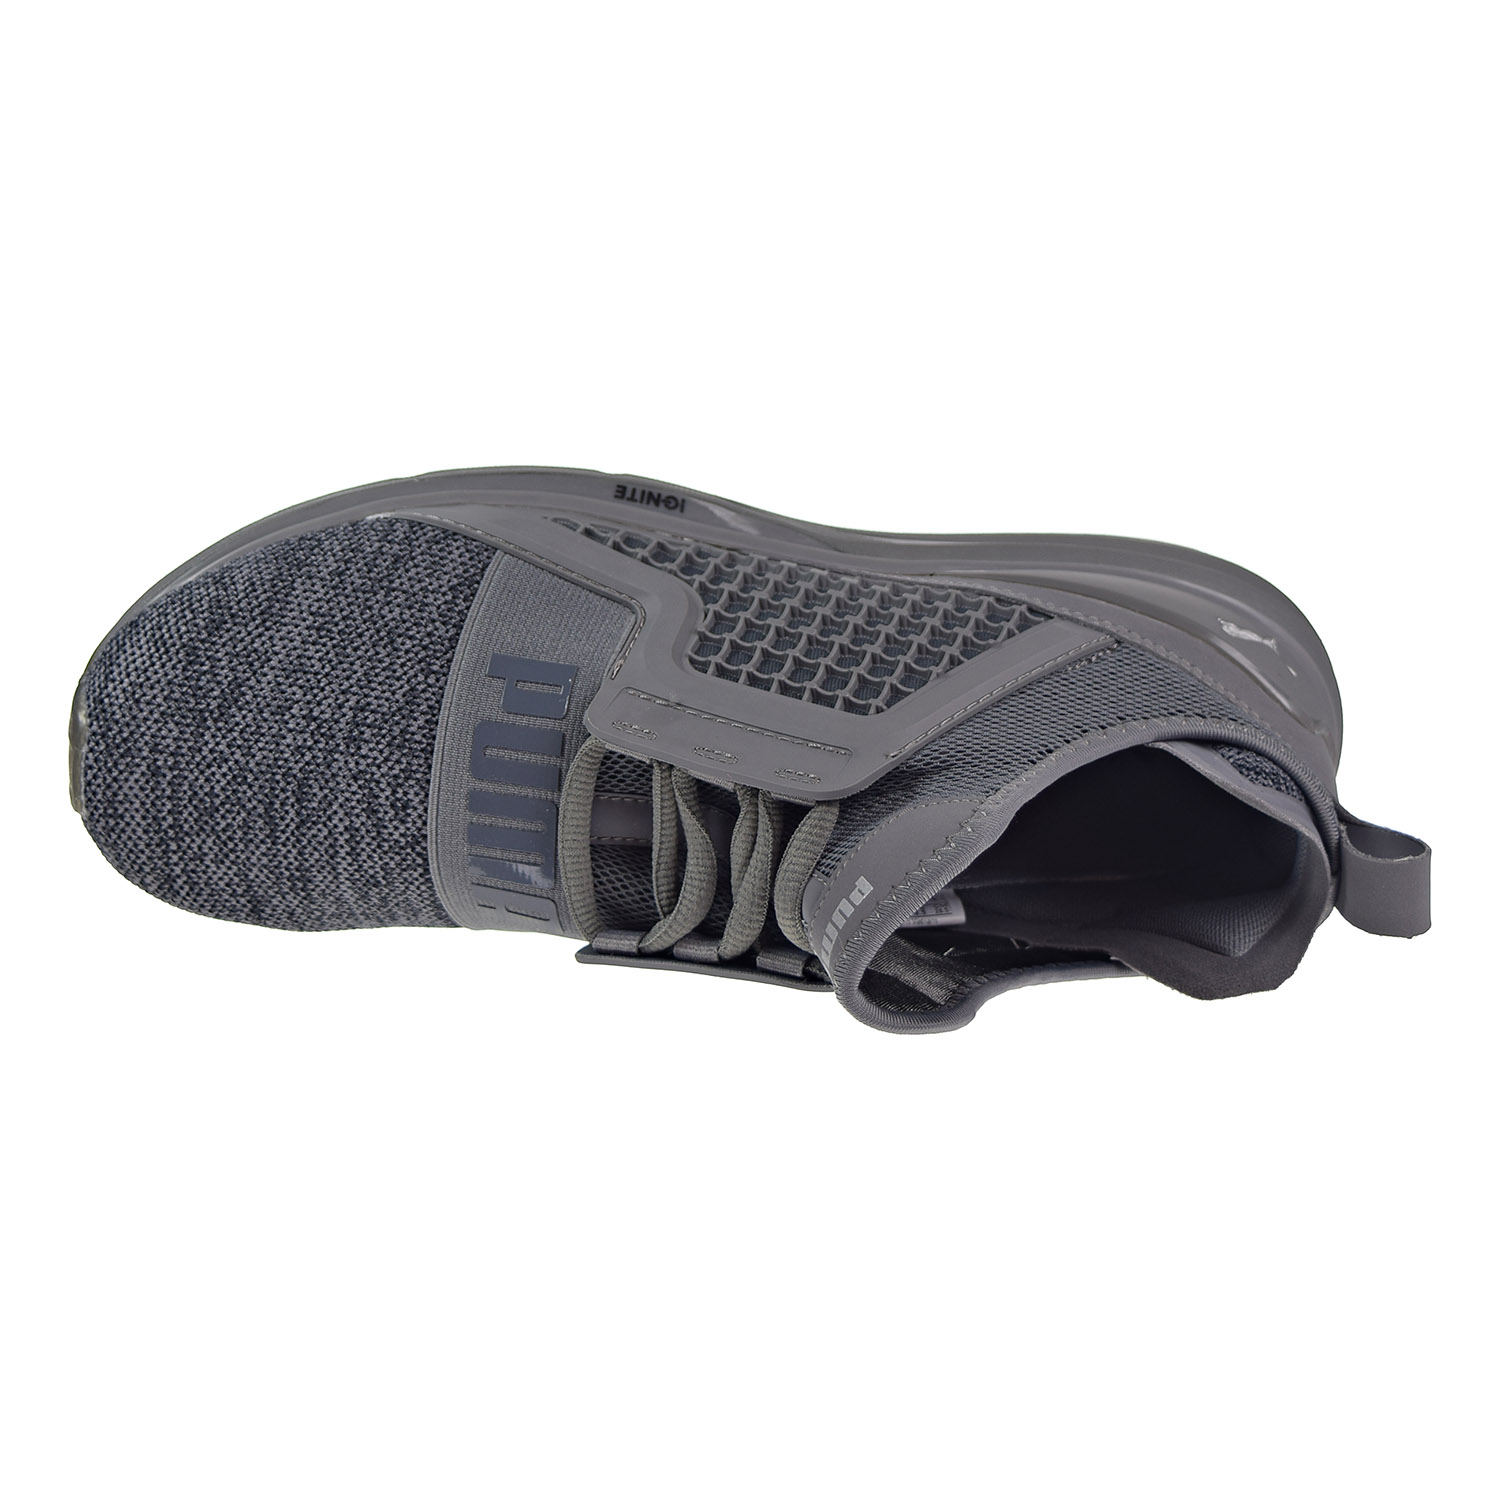 6156ae0361b PUMA - Puma Ignite Limitless Knit Men s Shoes Quiet Shade Puma Silver 189987 -06 - Walmart.com